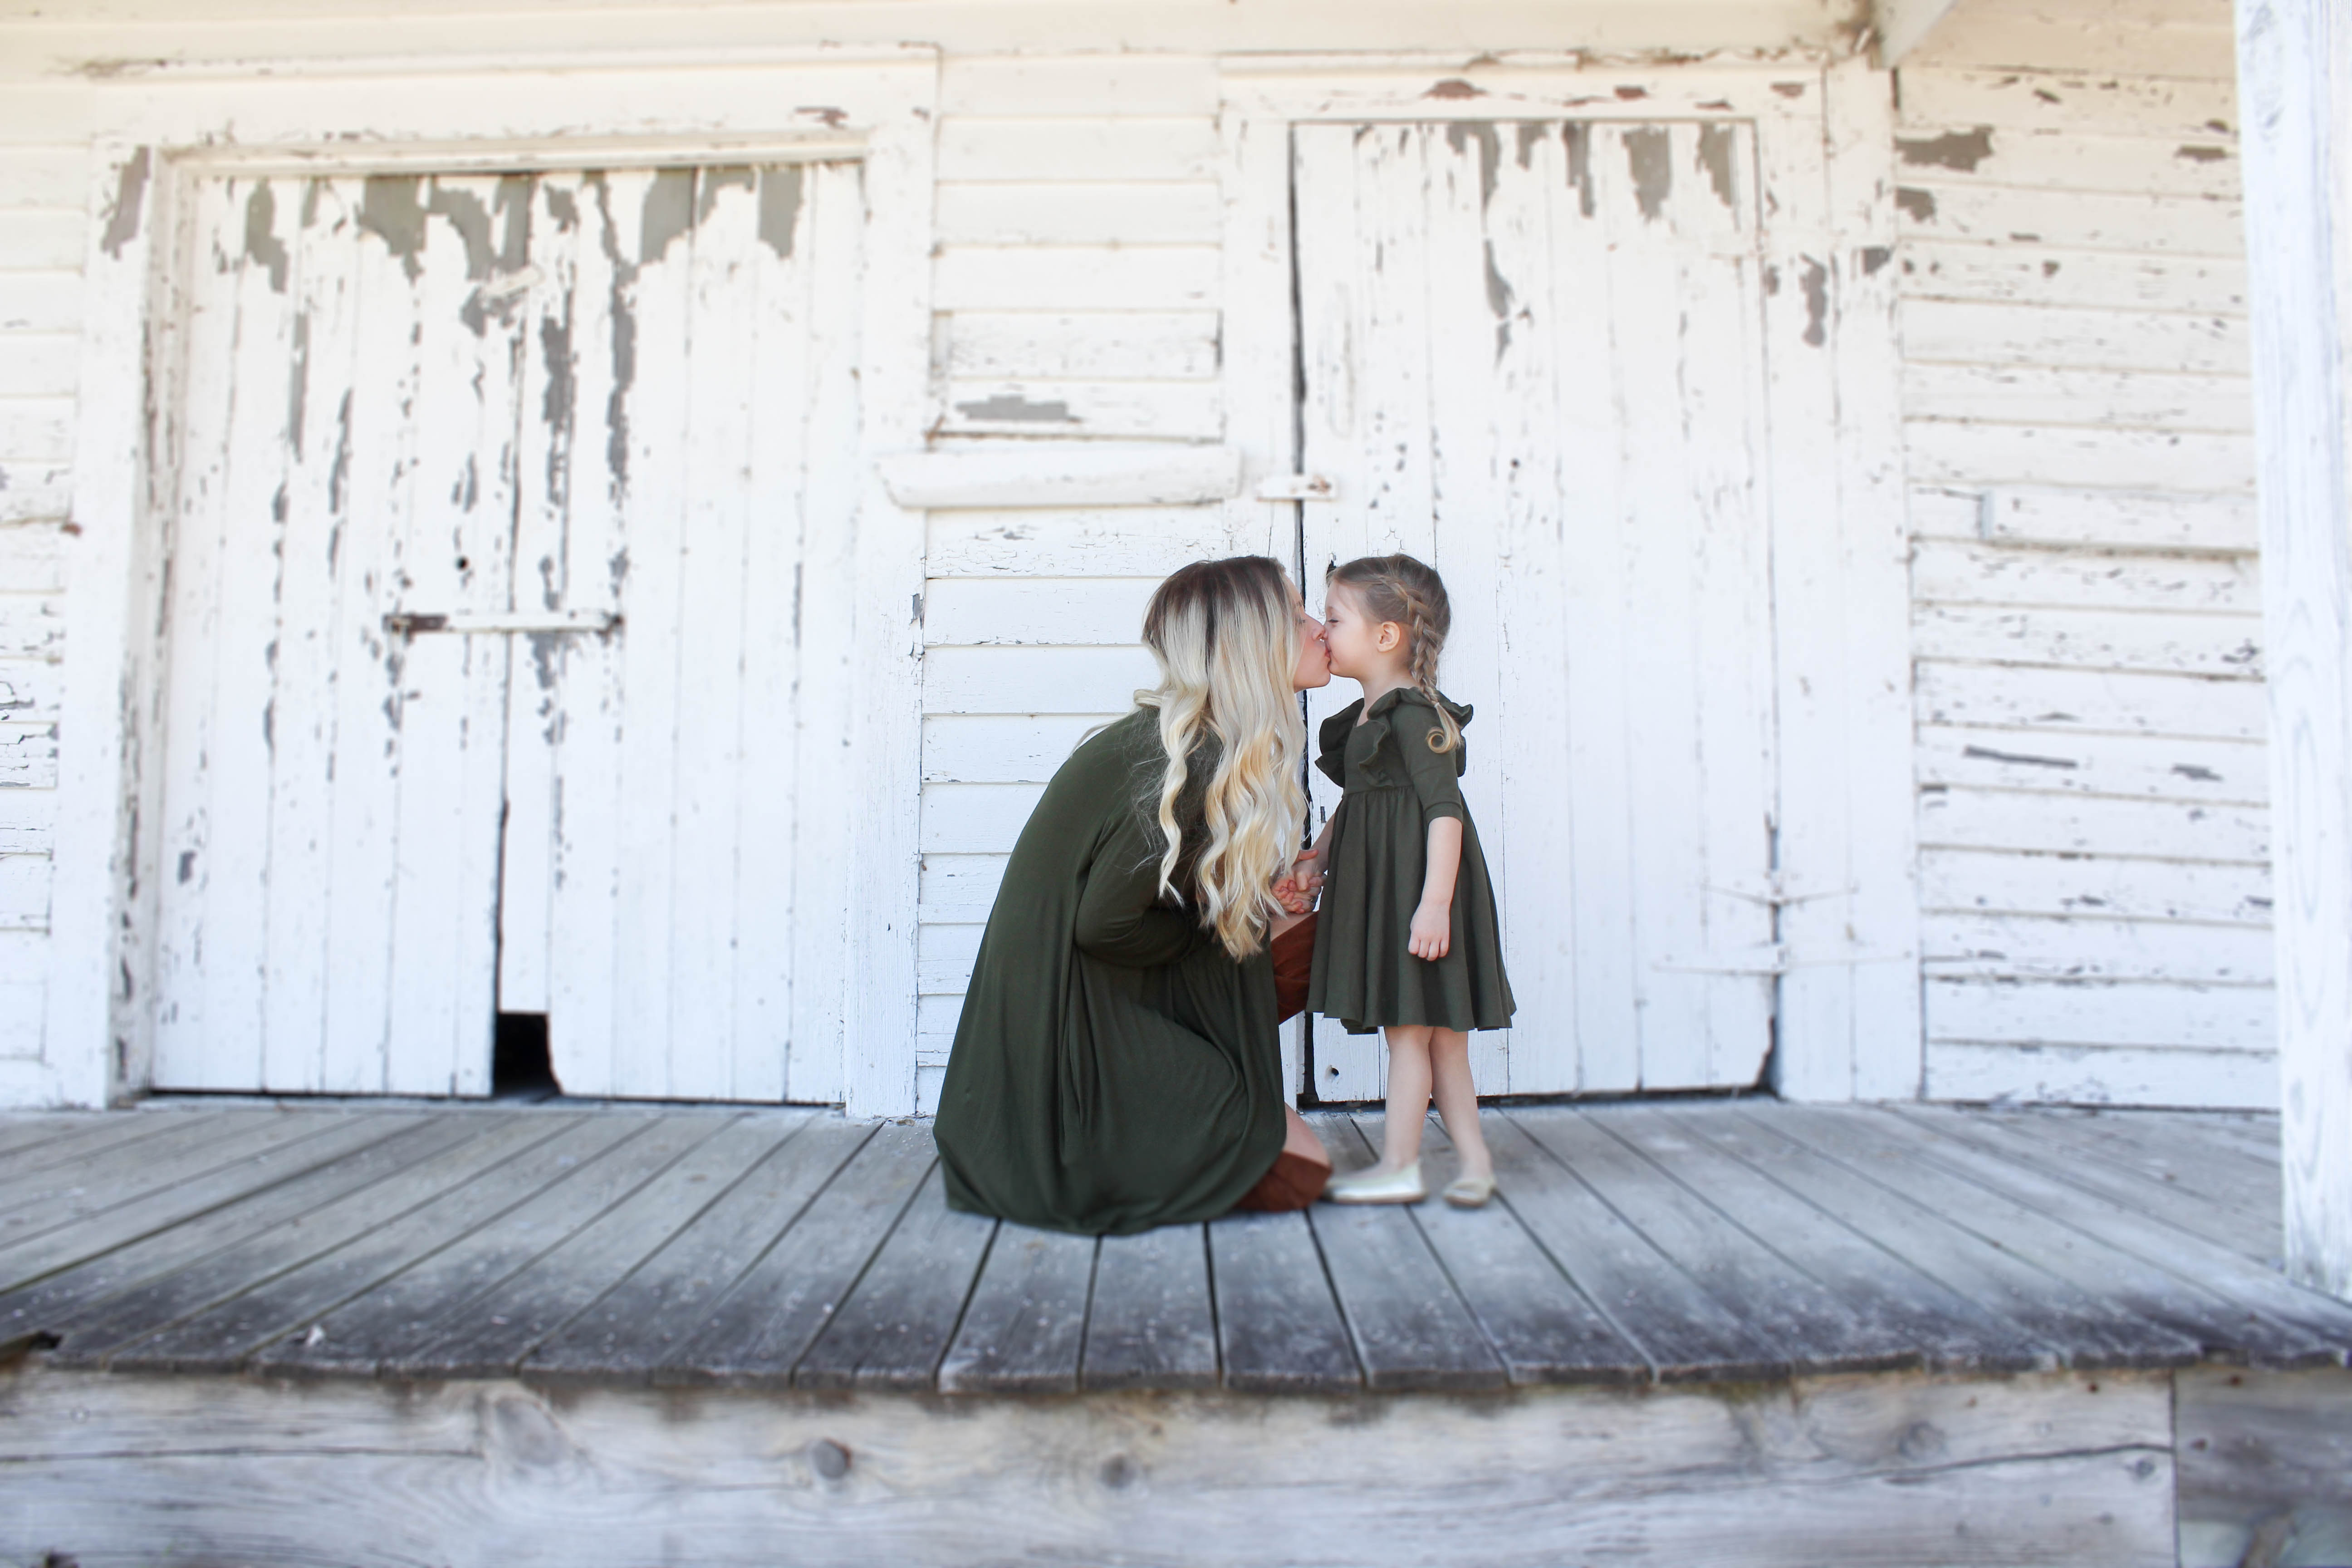 Olive You – A Letter To my Mini-Me